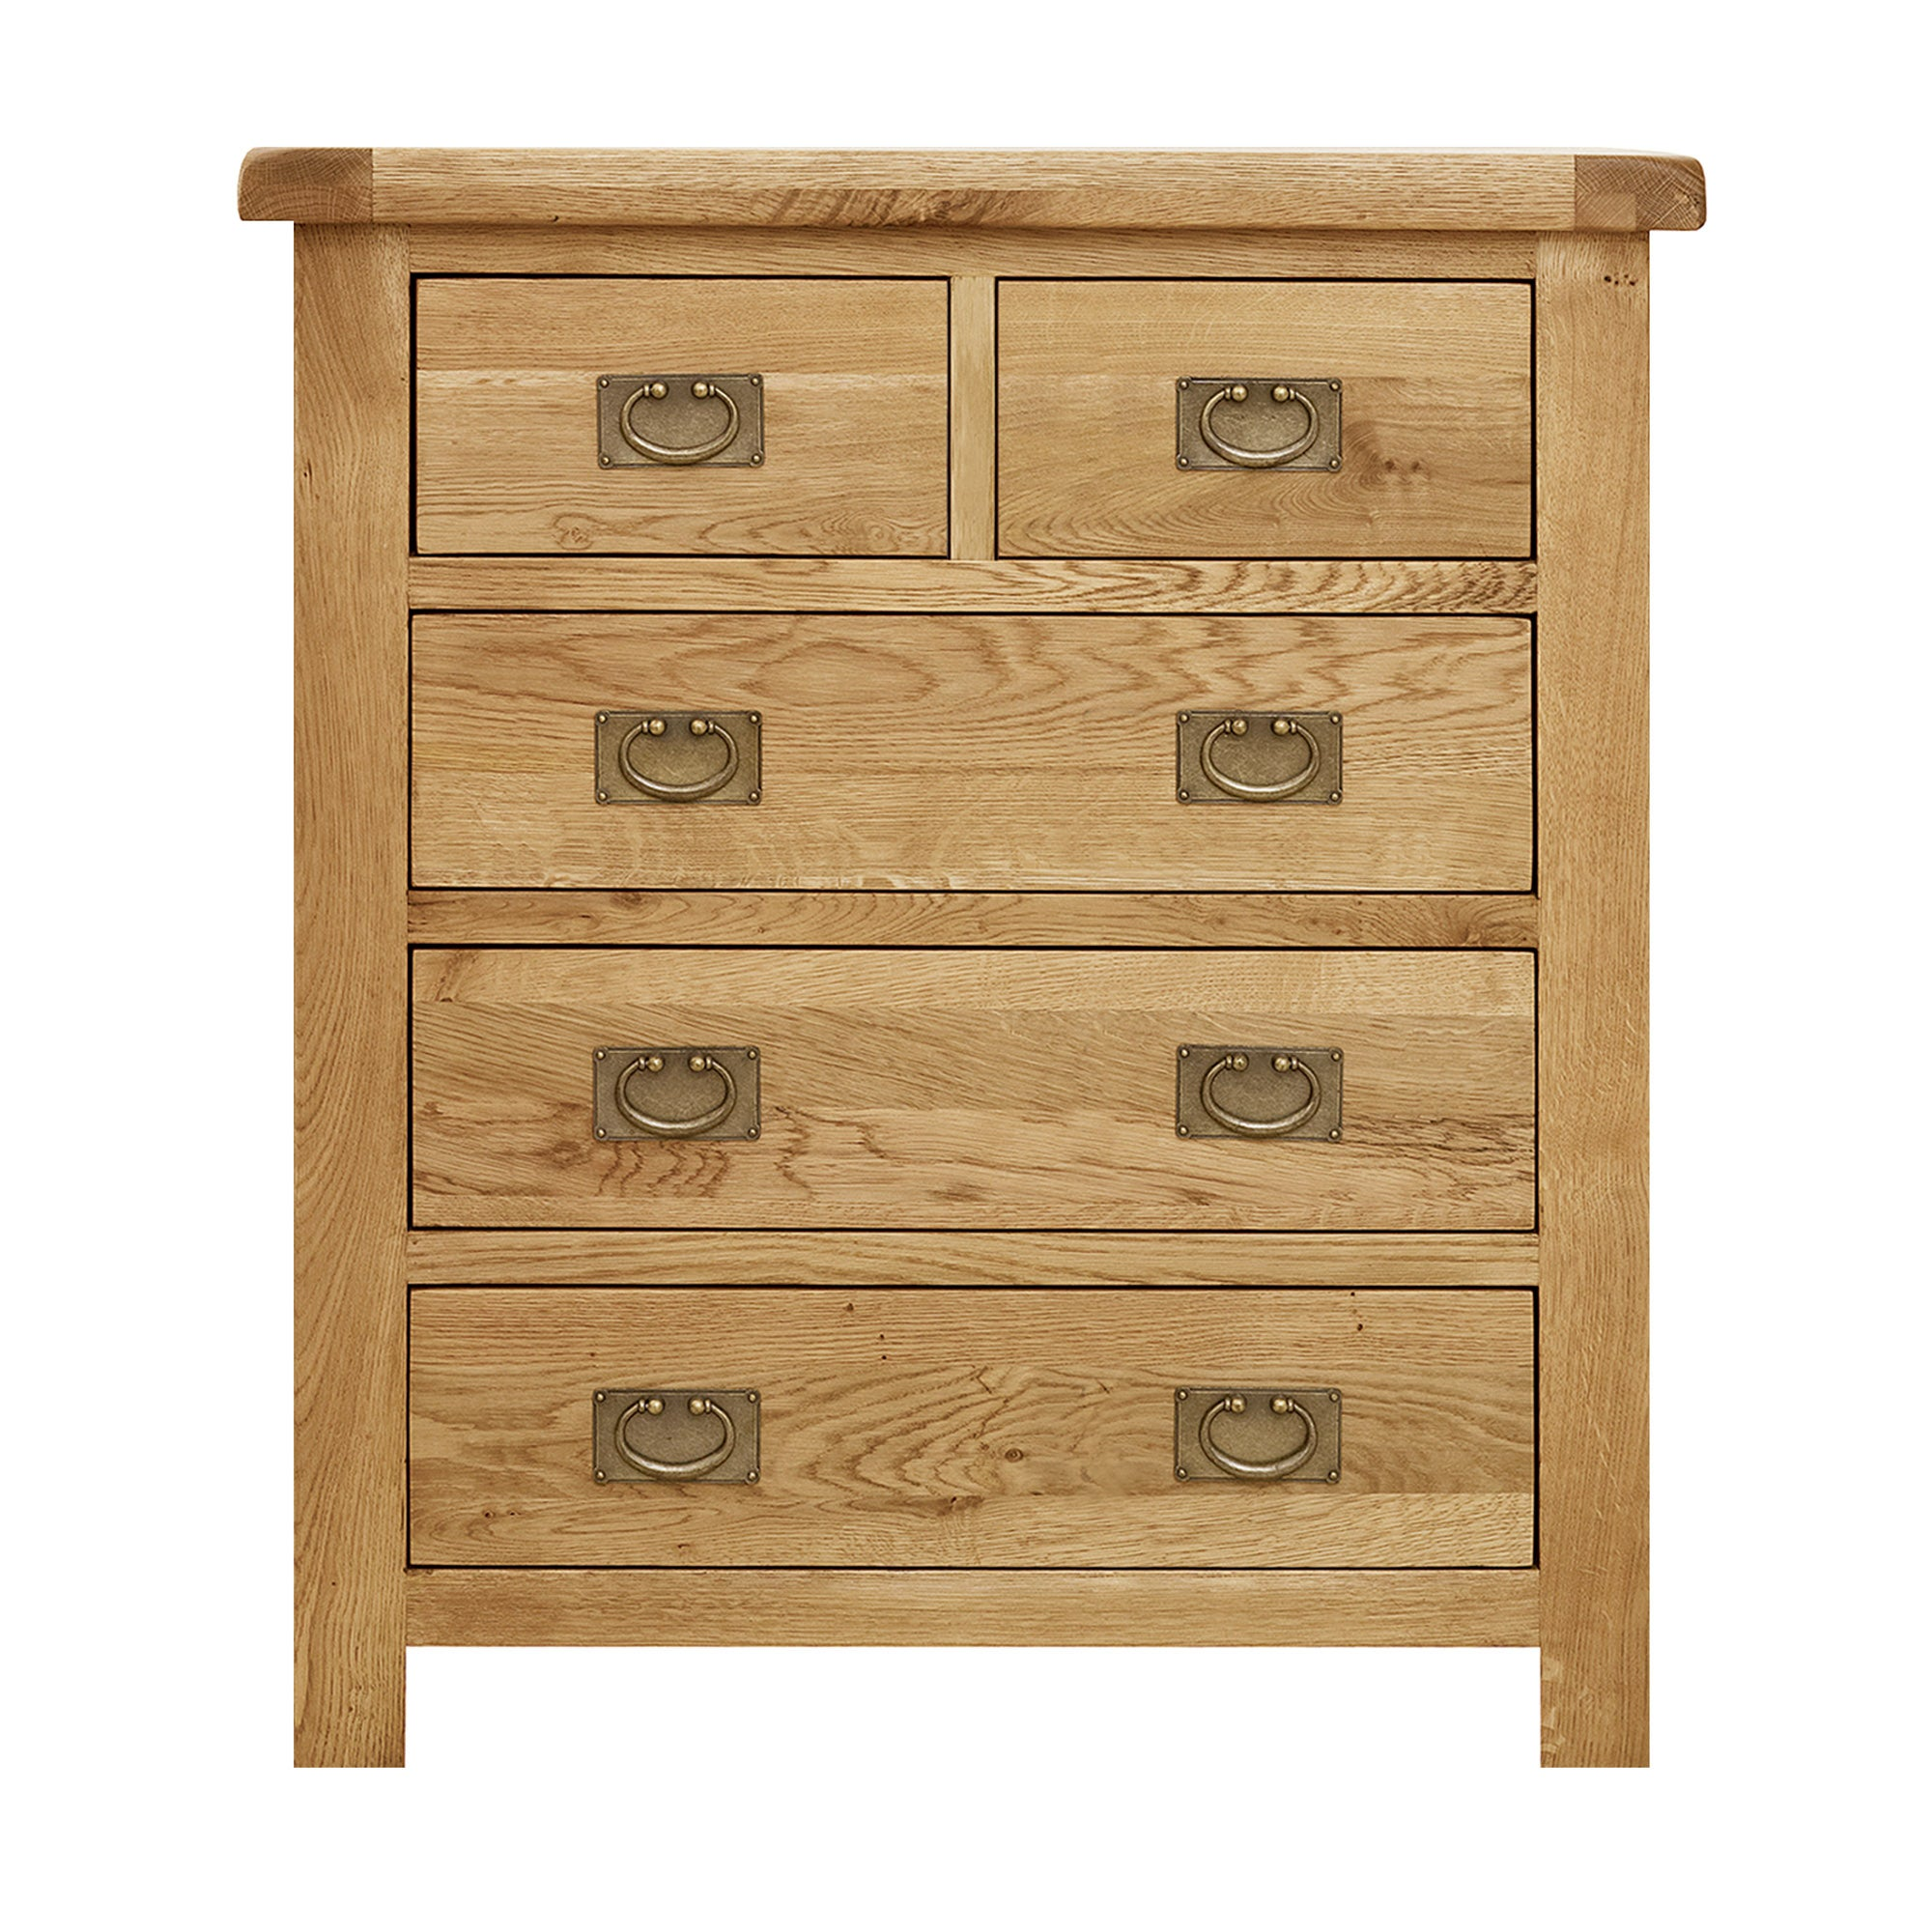 Photo of Aylesbury oak 5 drawer chest light brown / natural